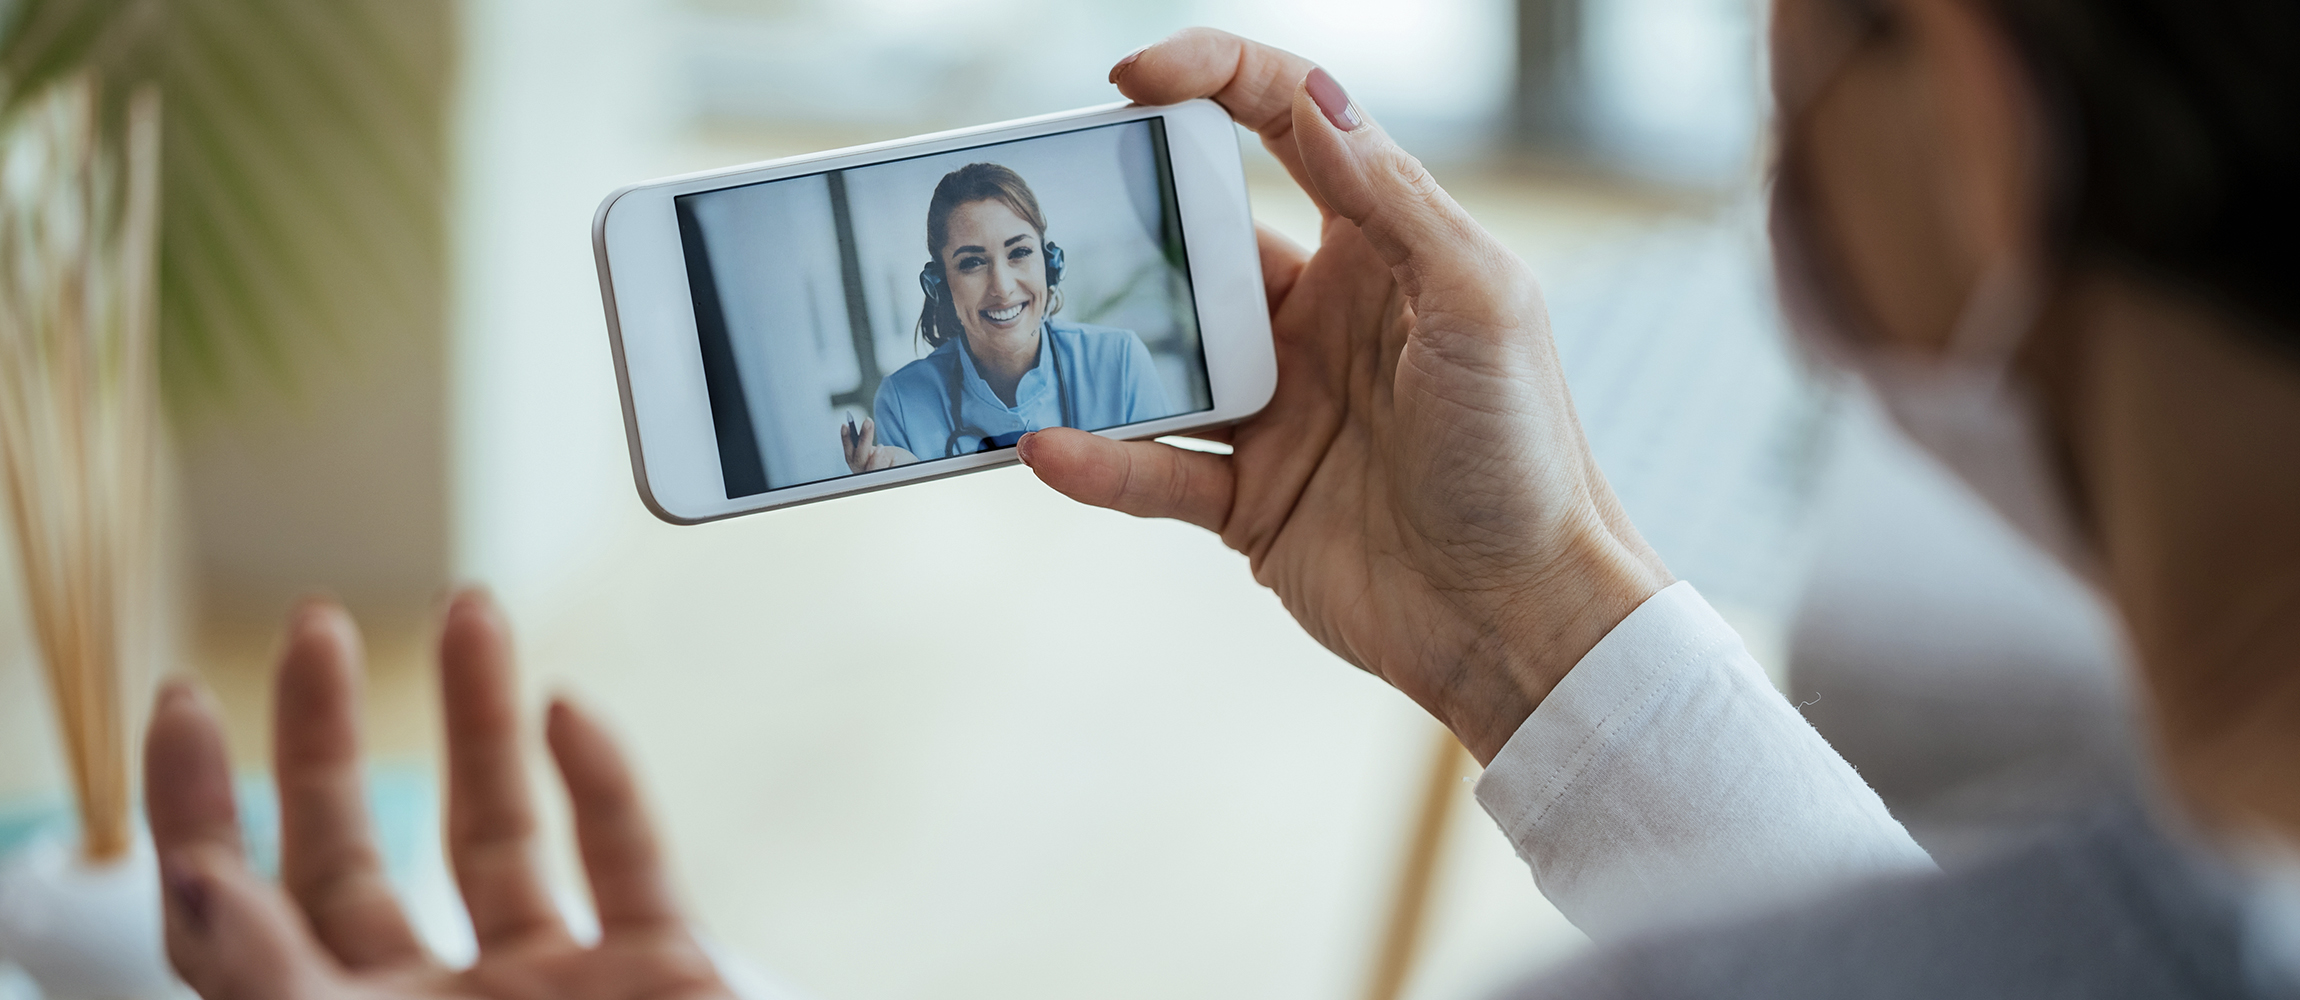 Diagnotes plays critical role in virtual patient communications during Coronavirus crisis